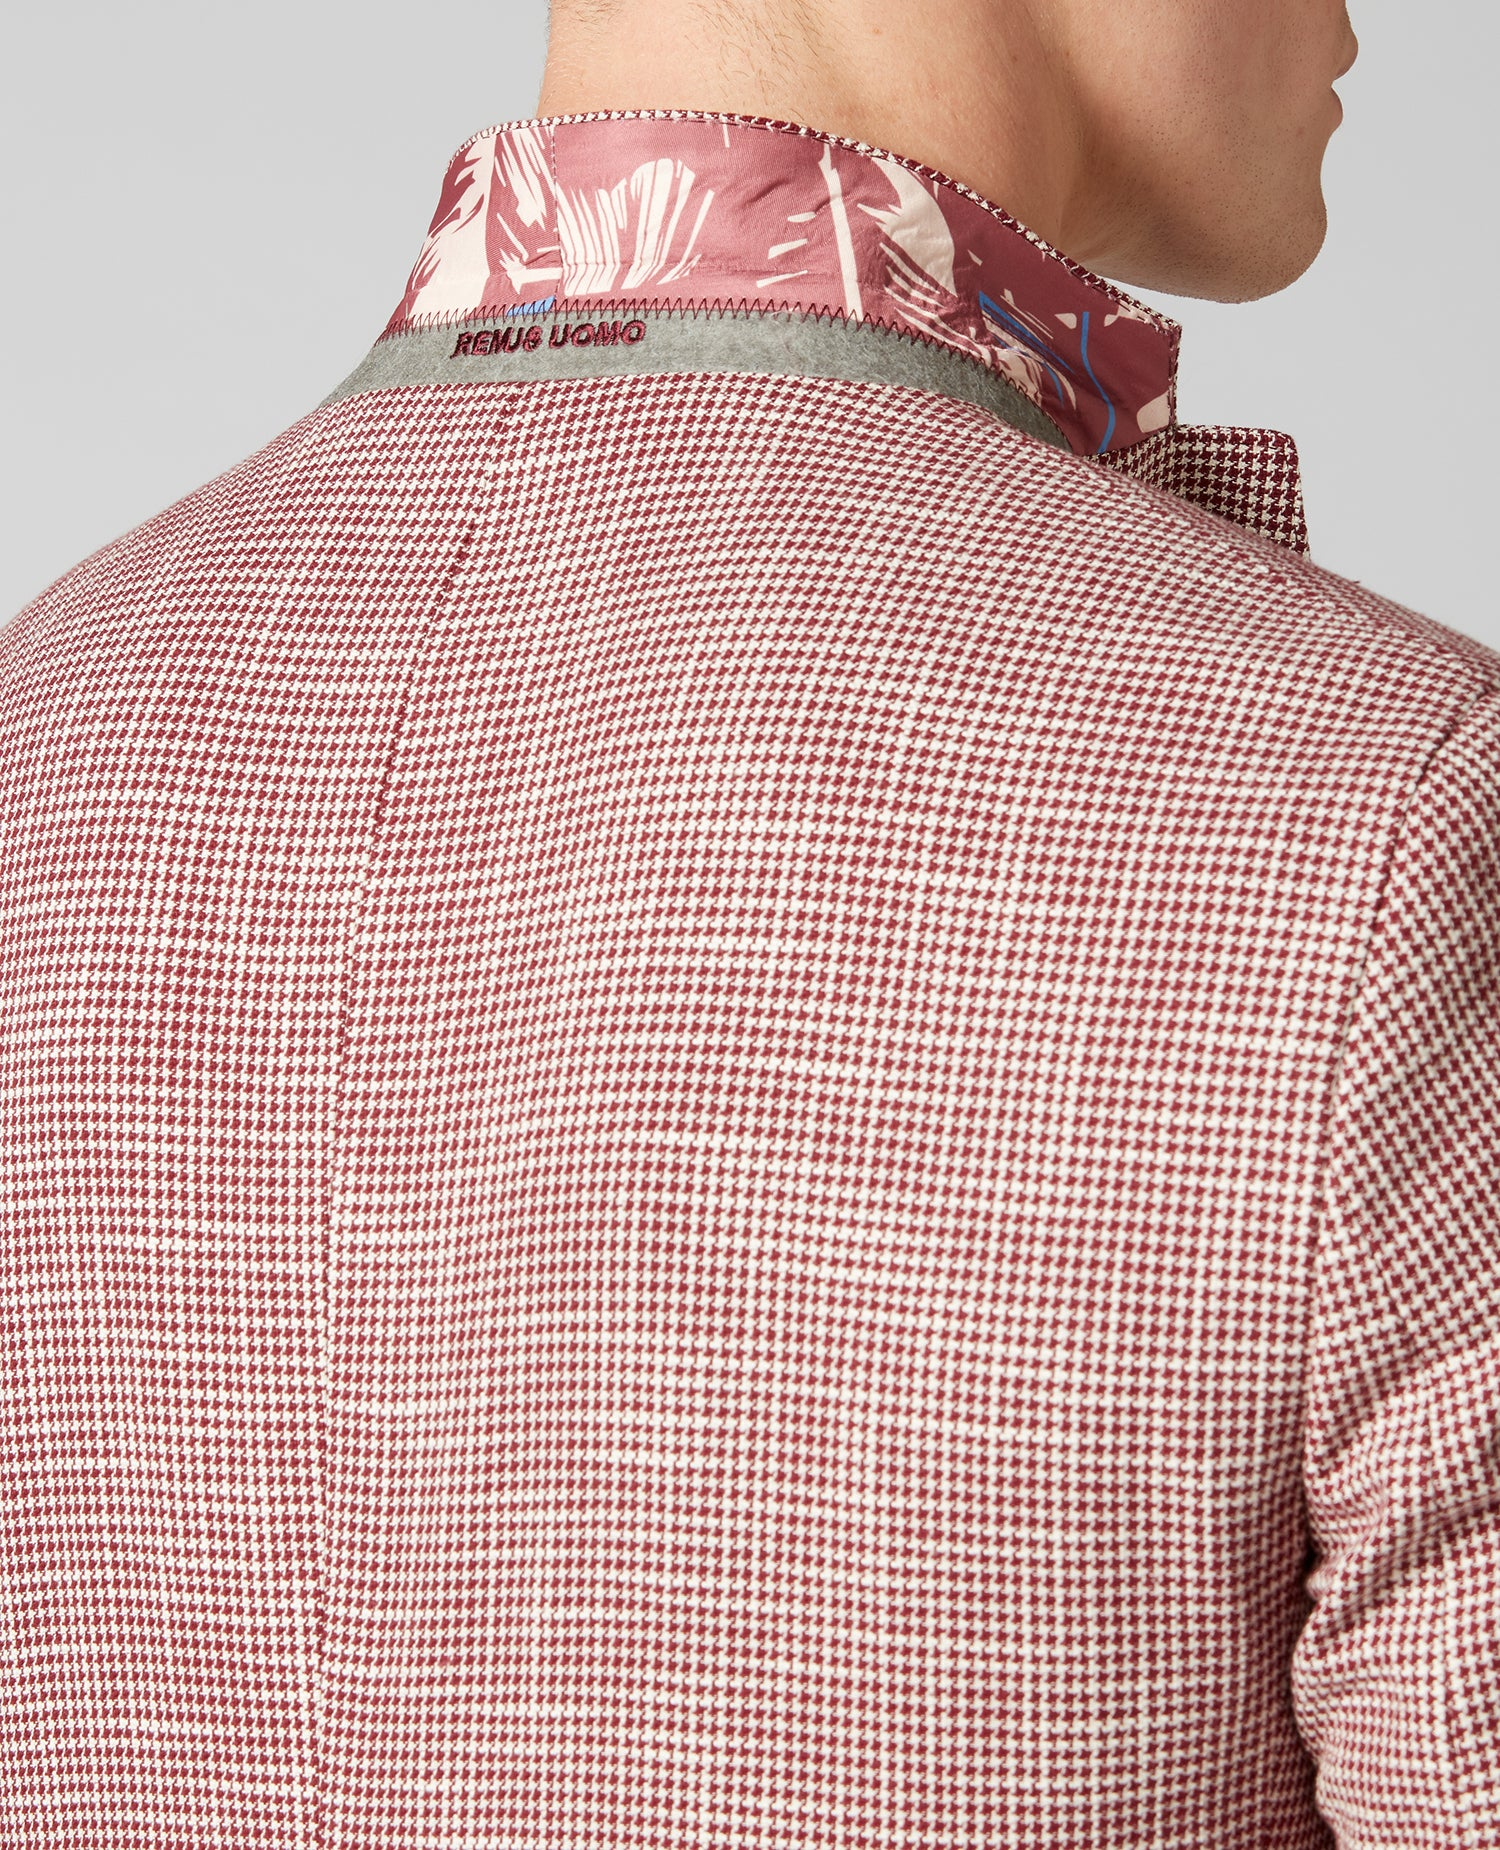 Novara Red & White Houndstooth Pattern Blazer